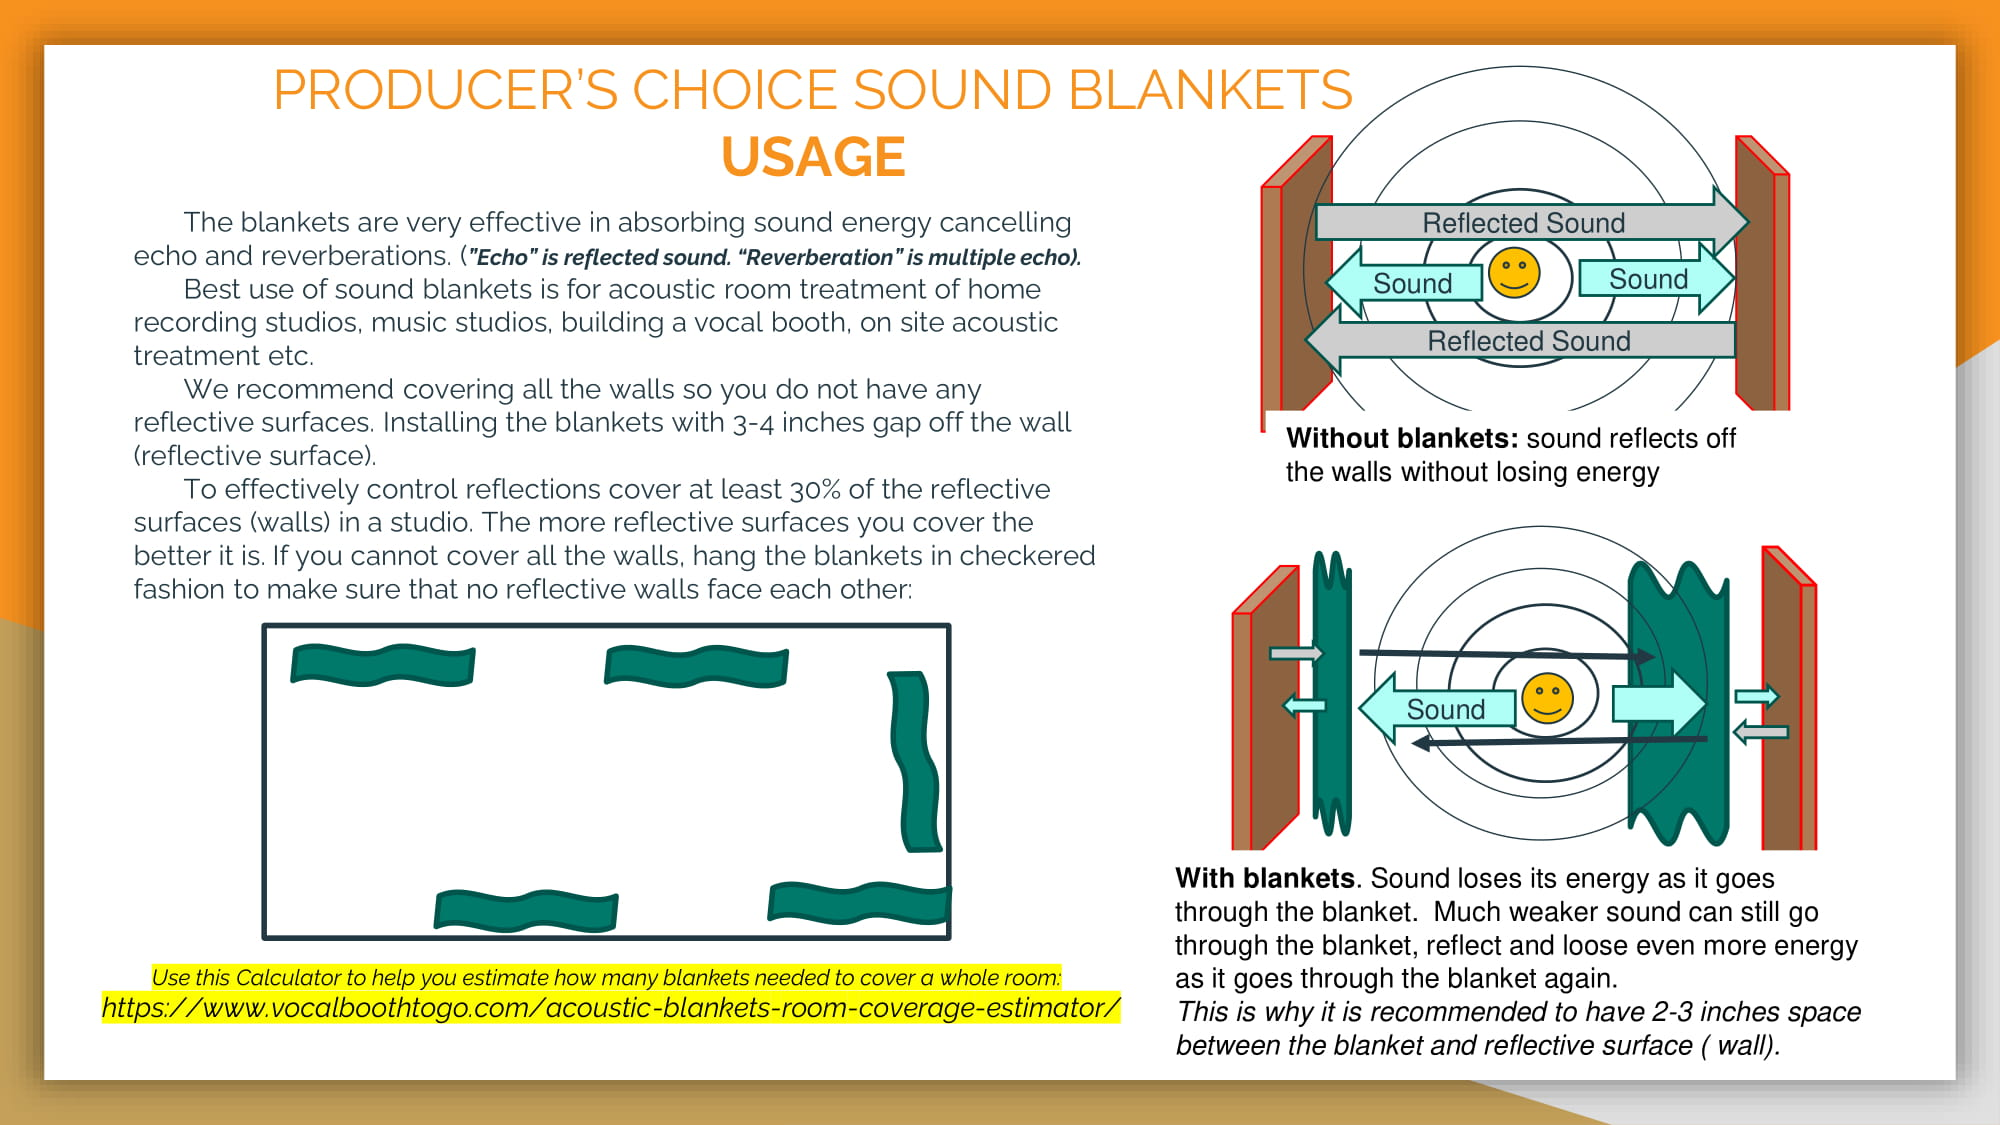 PRODUCER'S CHOICE SOUND BLANKETS USAGE